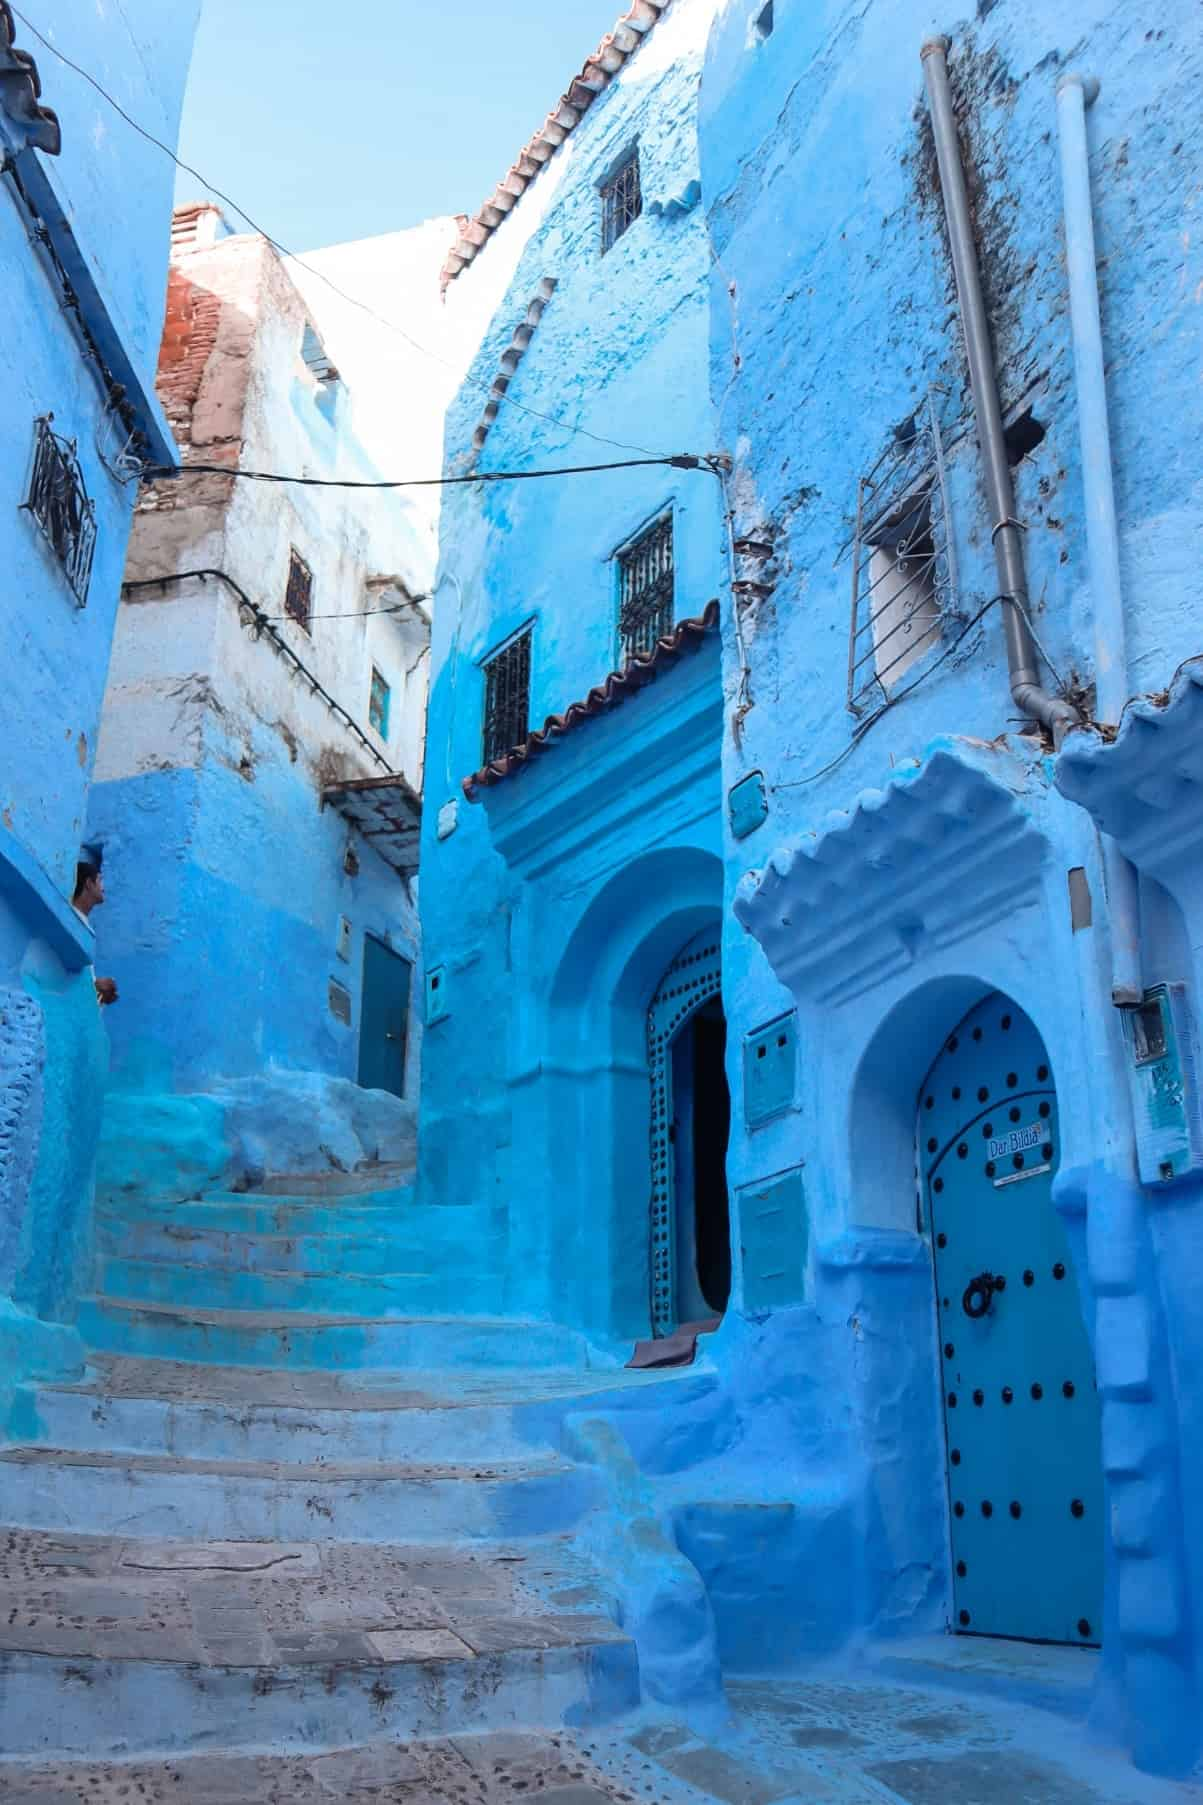 chefchaouen morocco - 10-day morocco itinerary